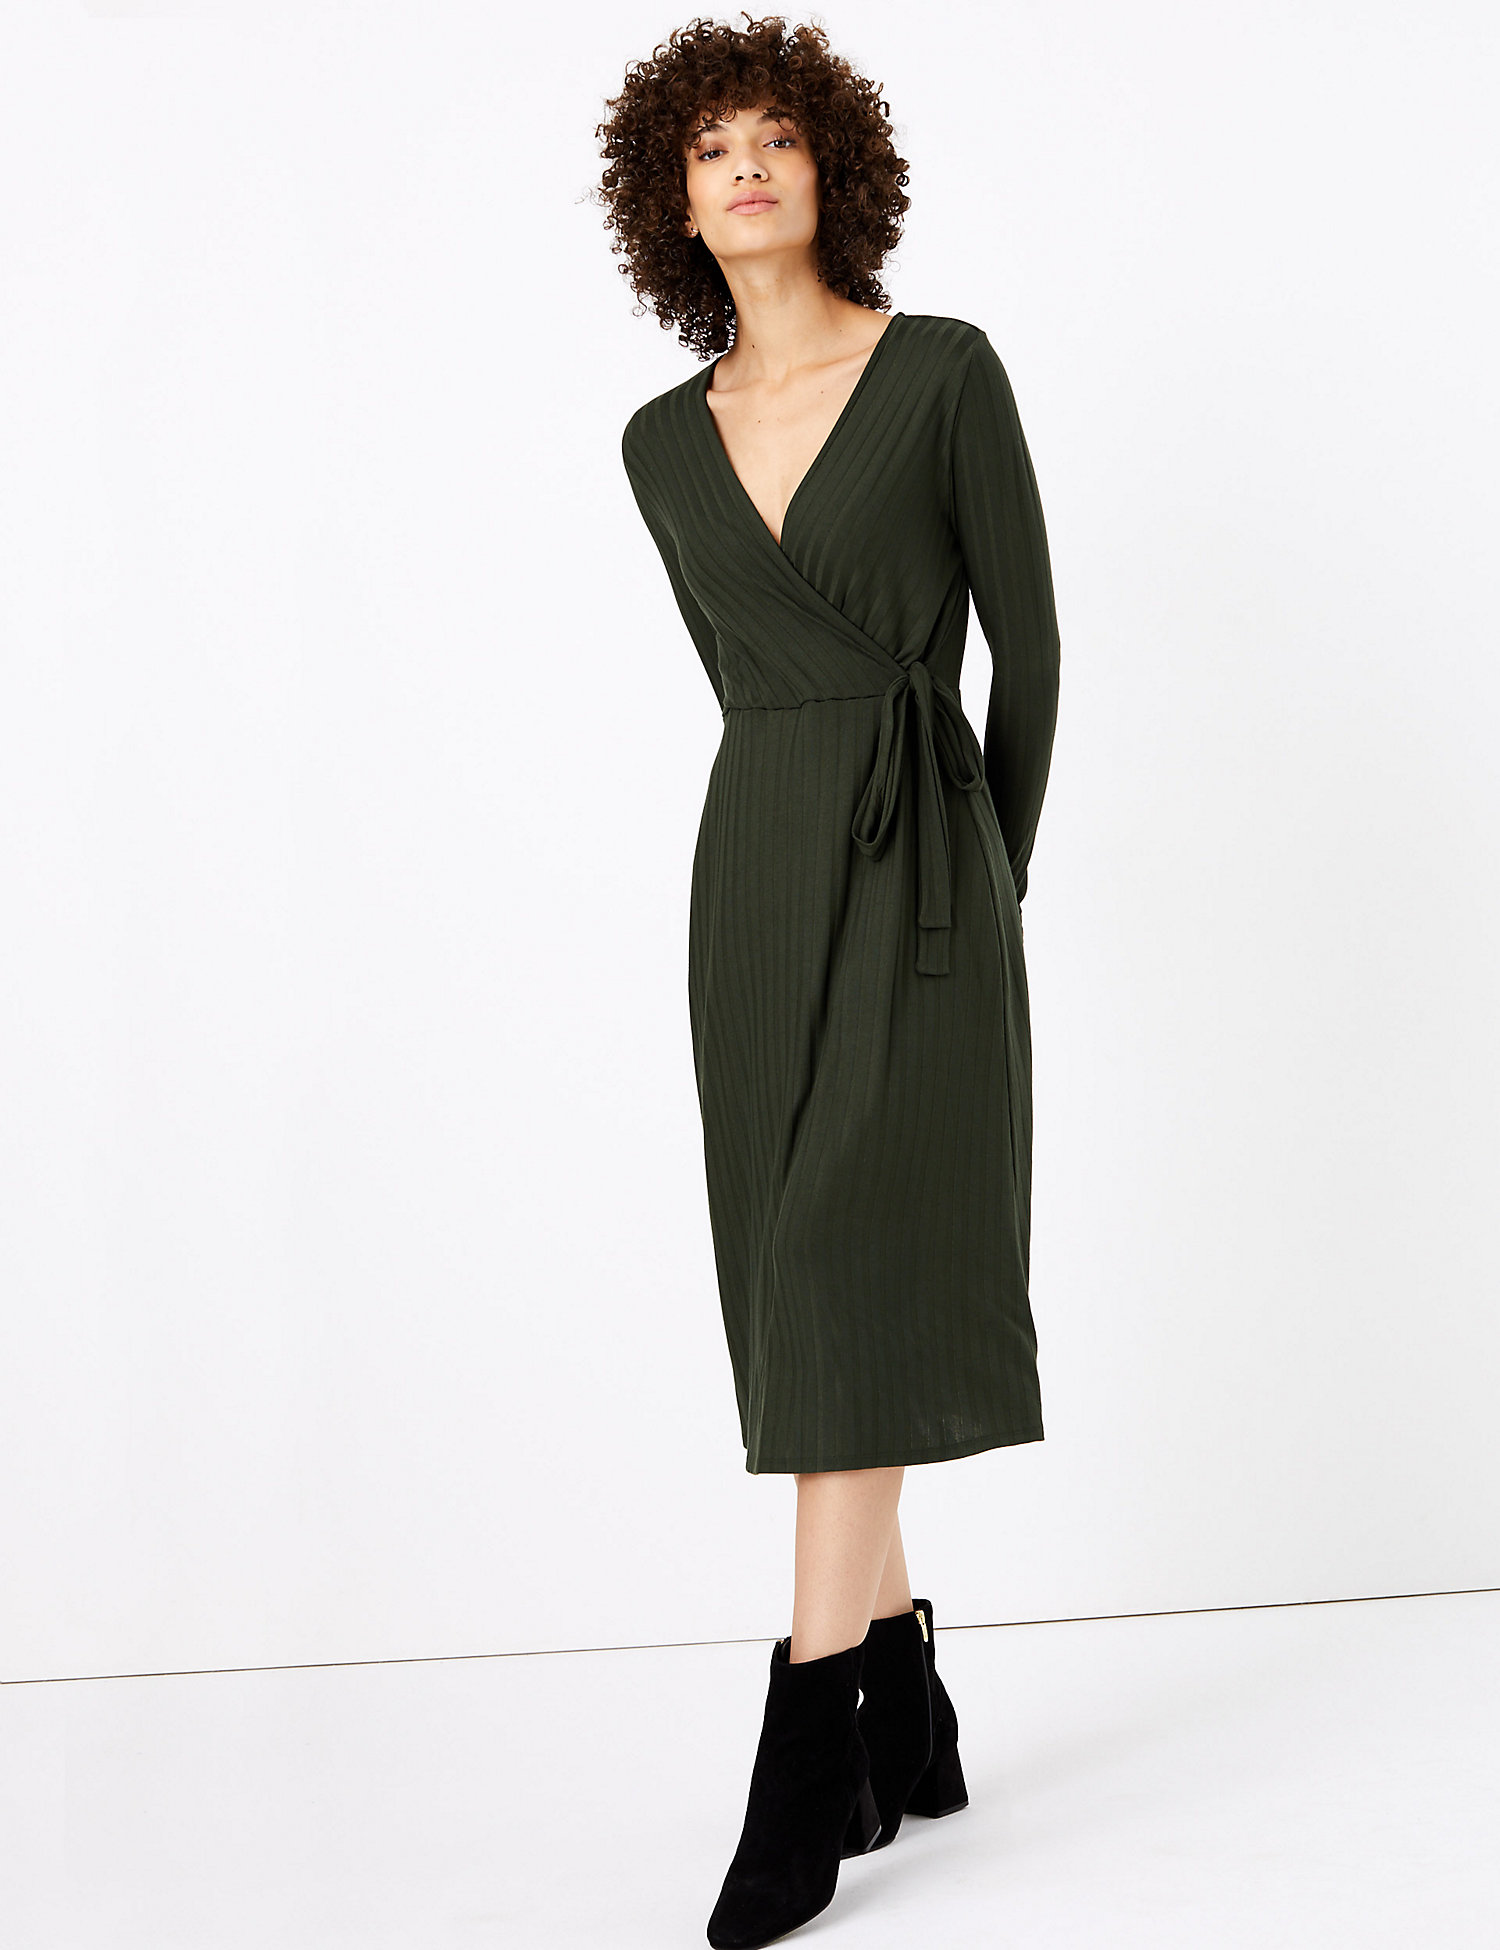 m&s ribbed fit and flare dress